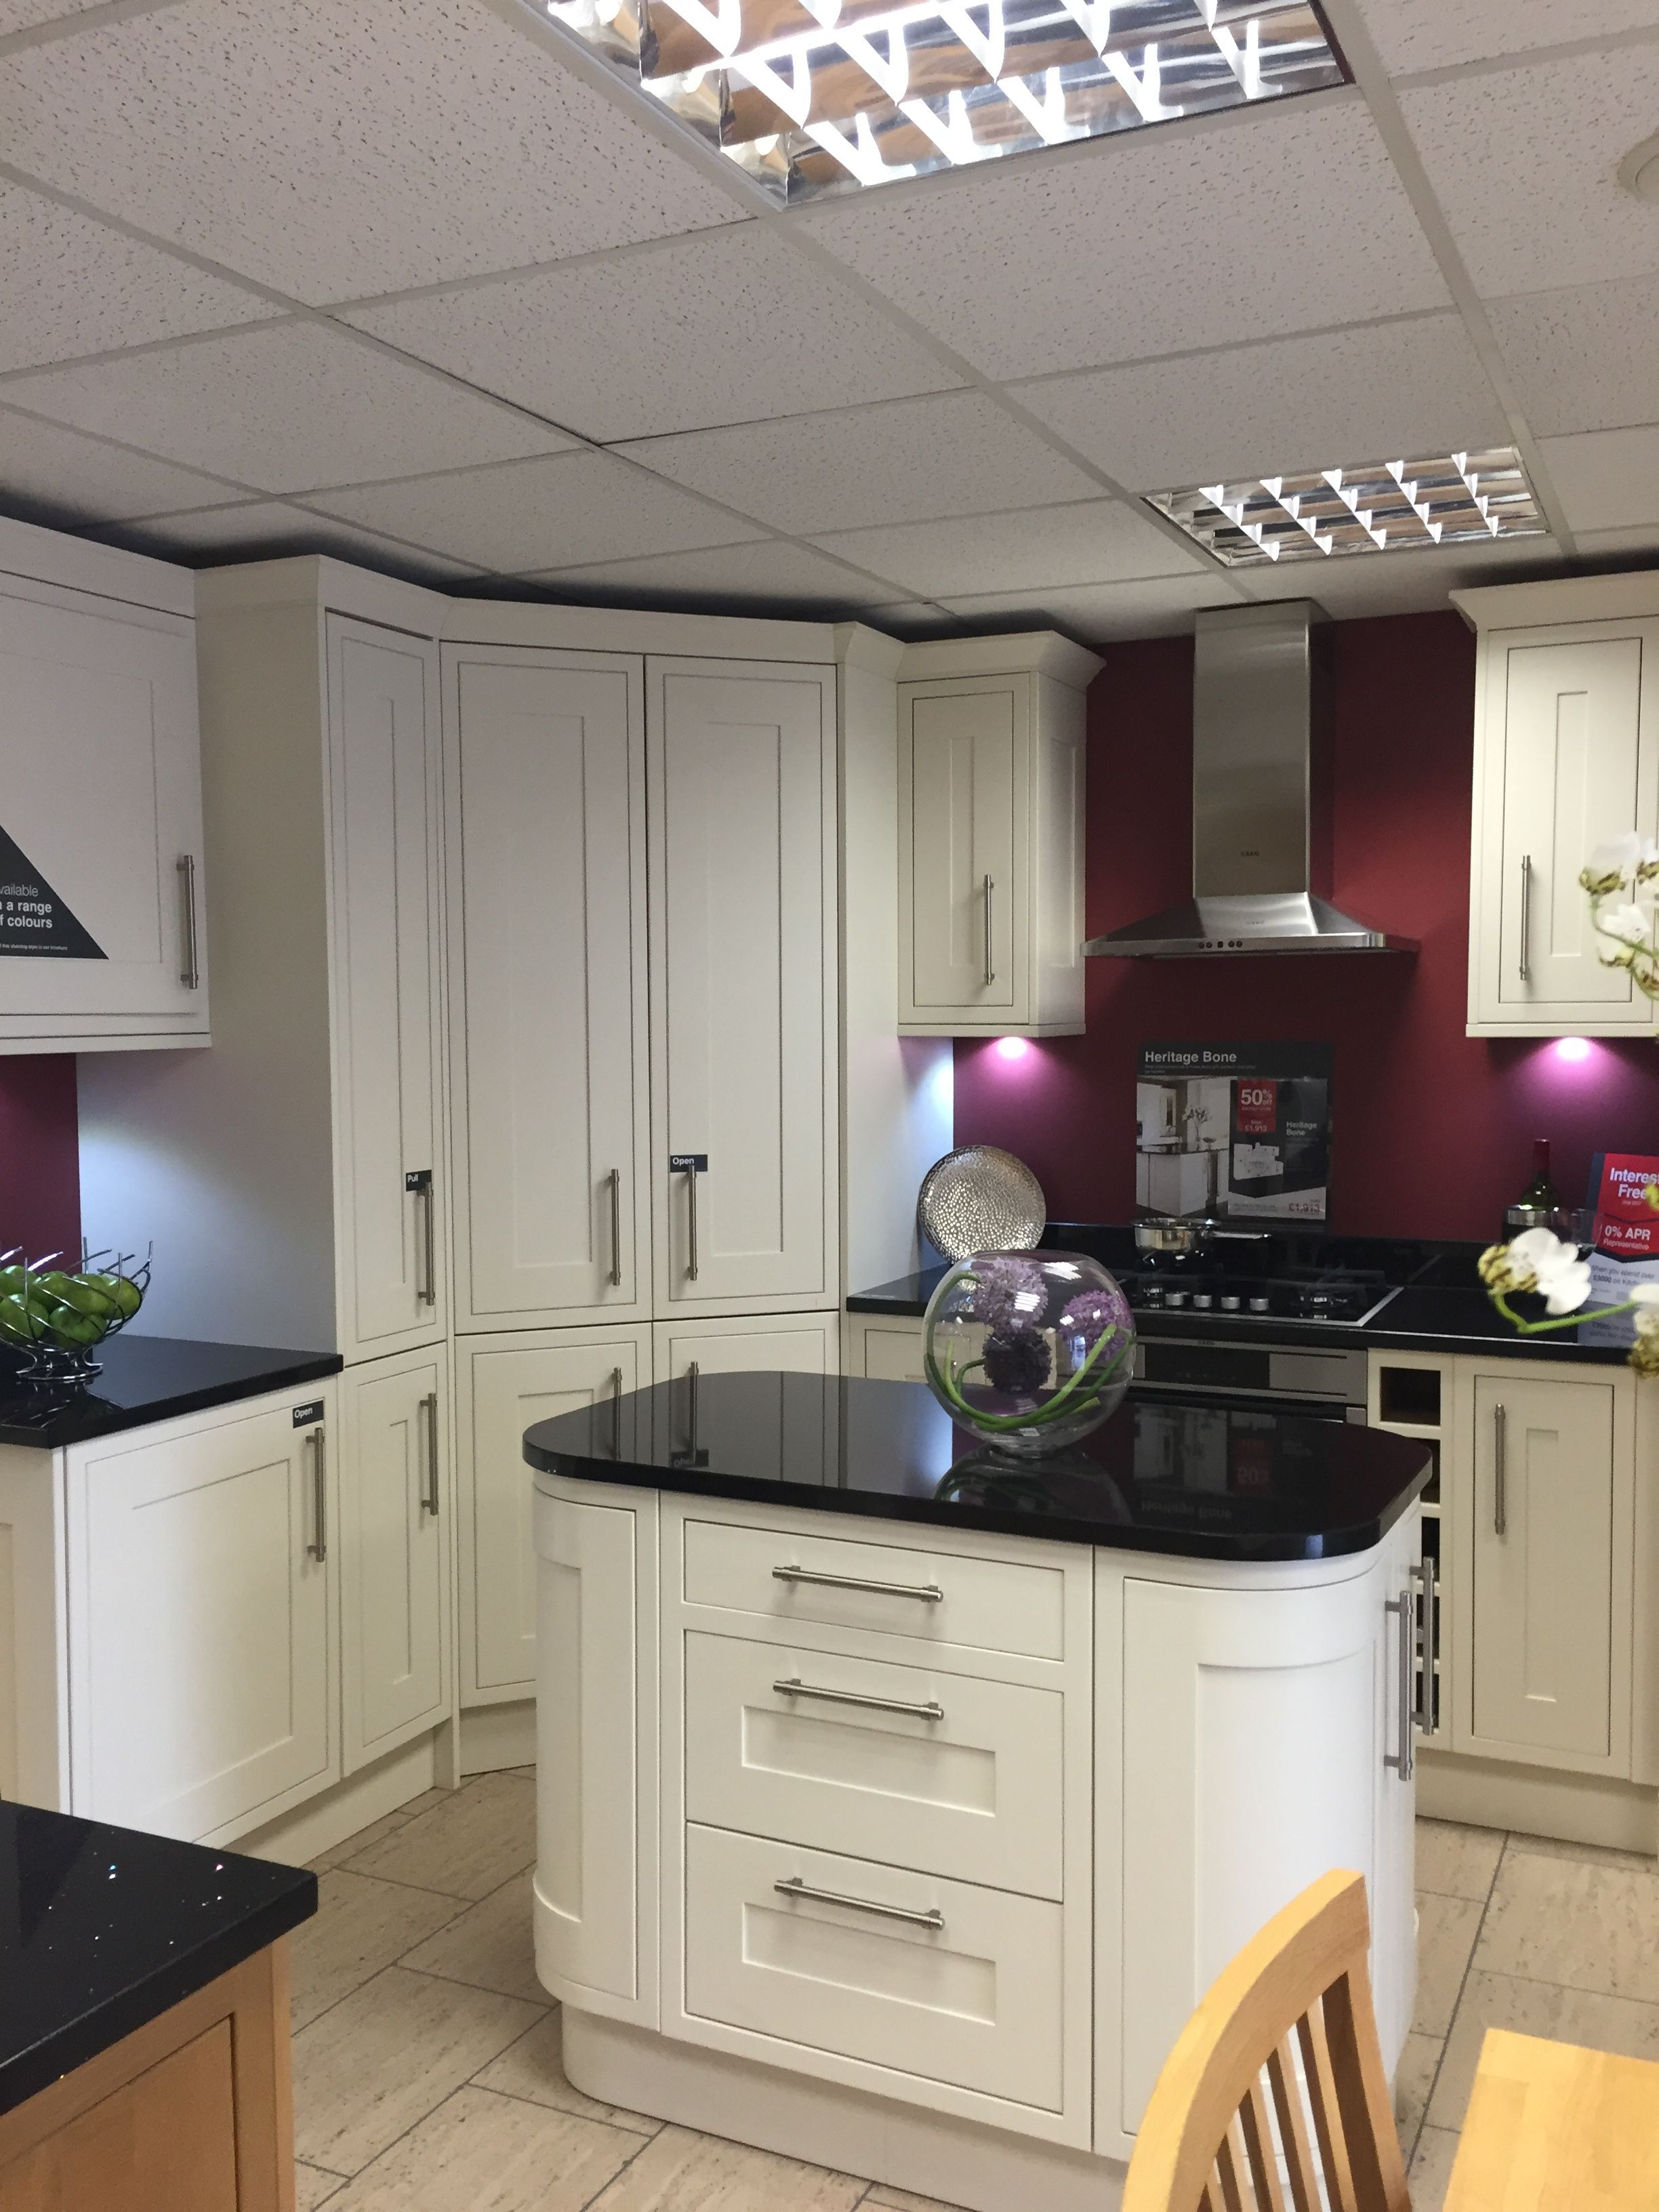 We Love This Kitchen Style And Layout Shaker Bone Wickes Without The Island Especially The Lard Kitchen Dining Living Kitchen Corner Cupboard Kitchen Design